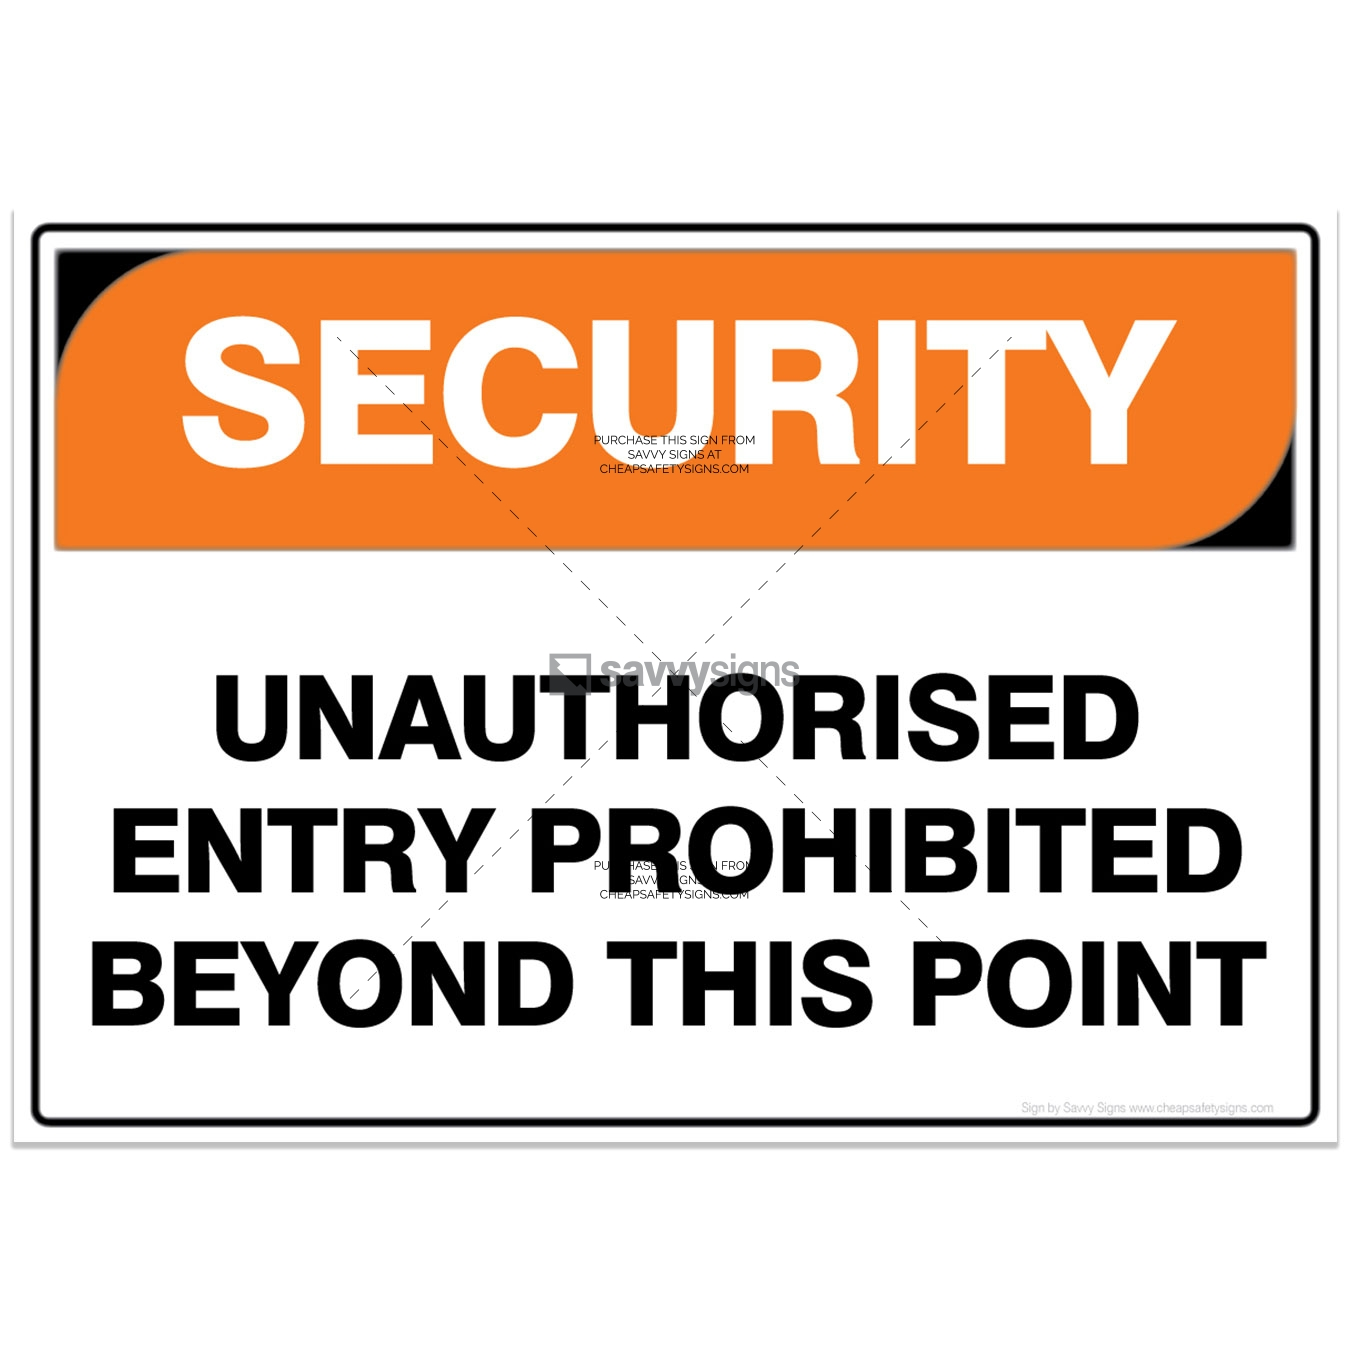 SSSEC3034-SECURITY-Workplace-Safety-Signs_Savvy-Signs_v3